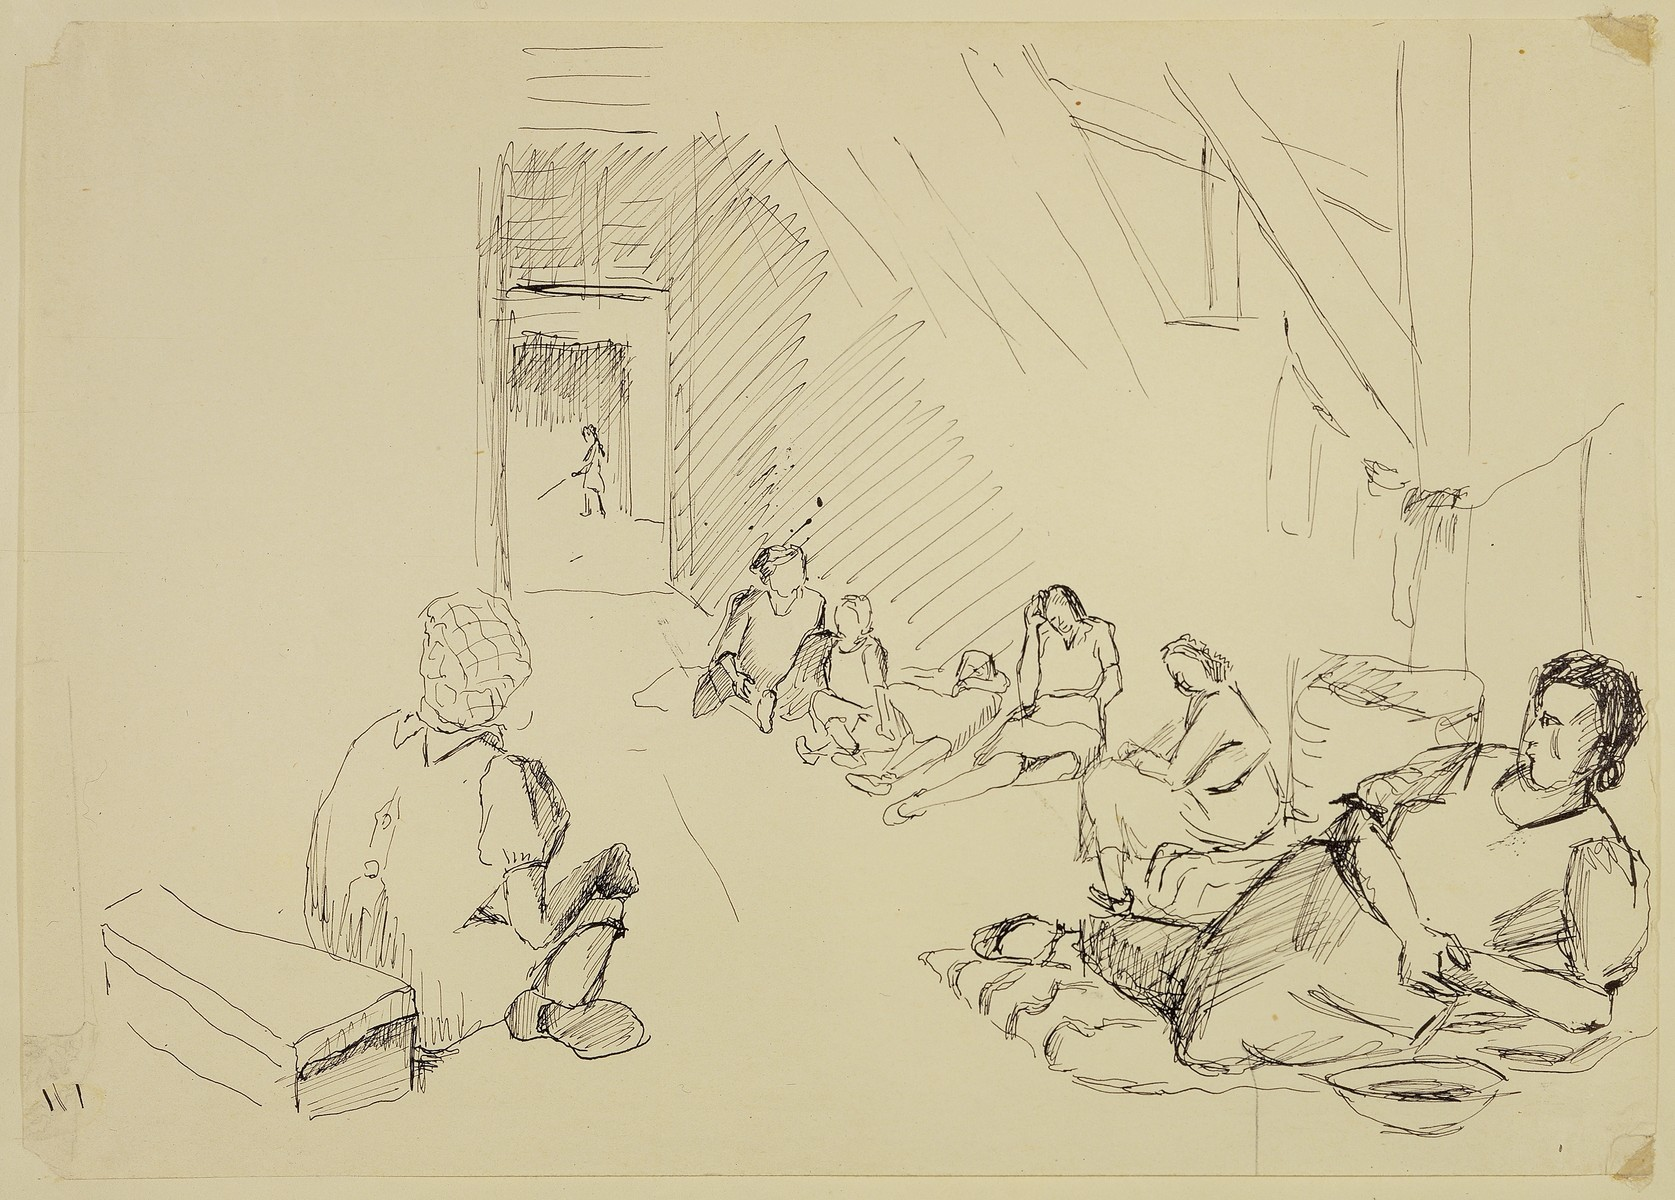 """Interior of Women's Barracks"" by Lili Andrieux."